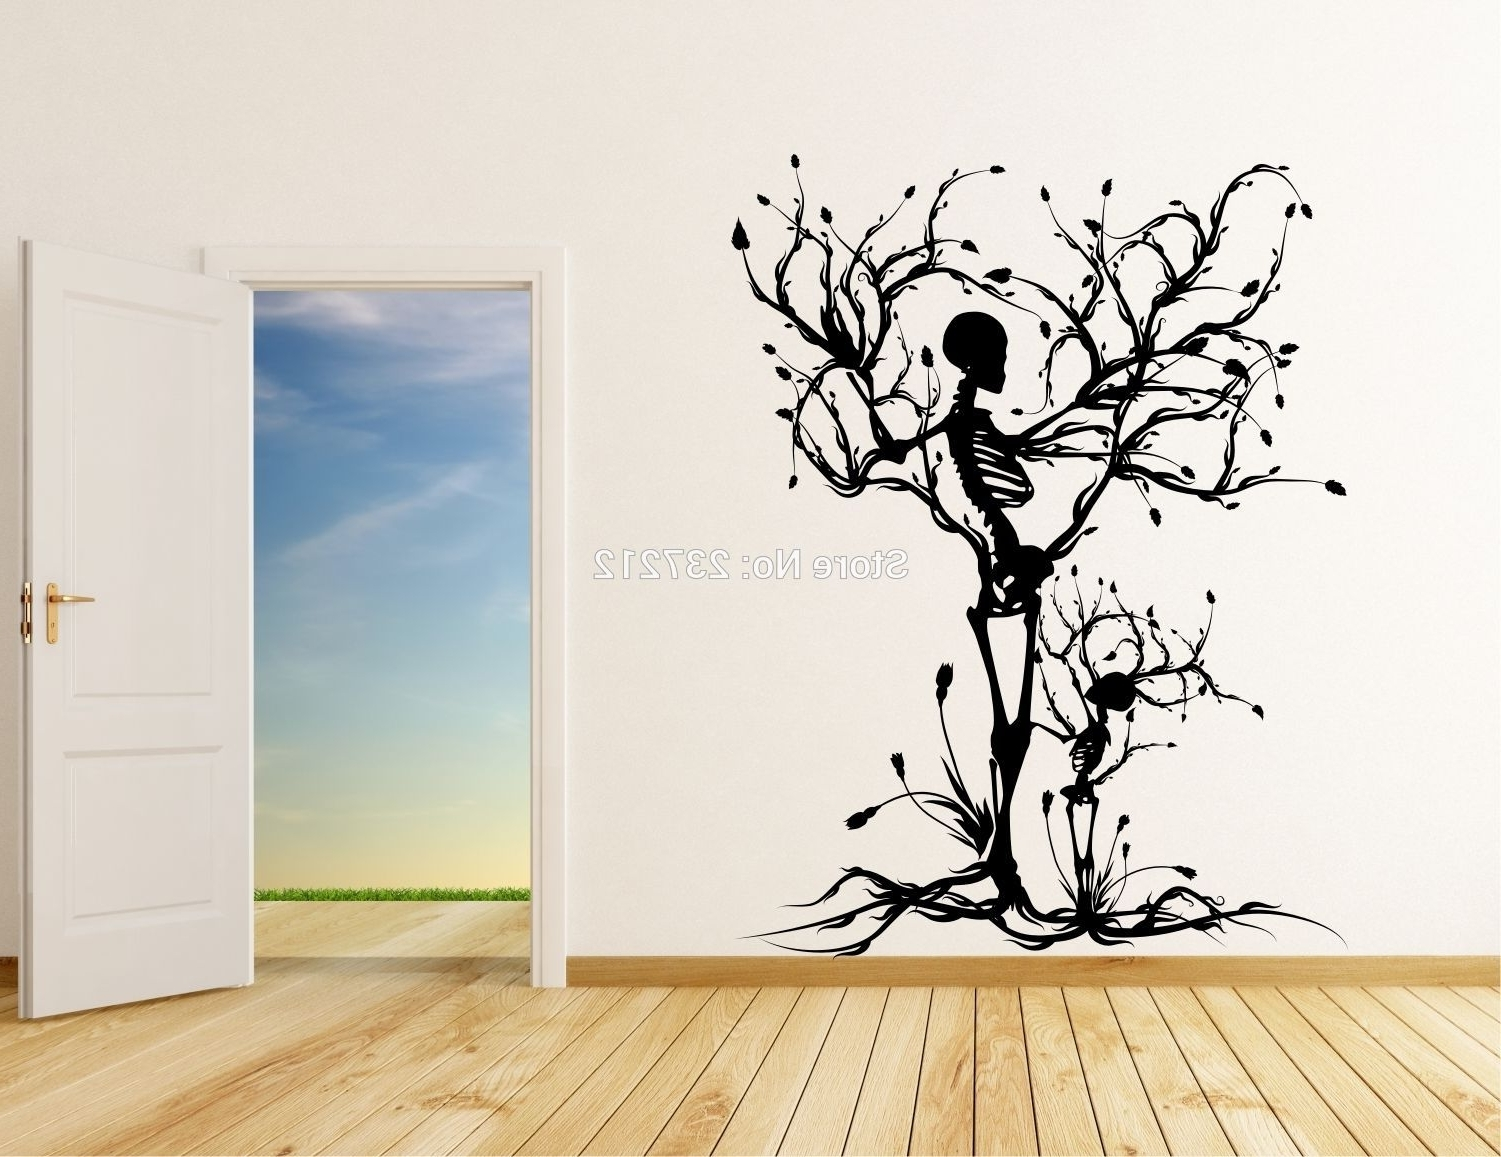 Newest Wall Cling Art With Regard To Wall Art Designs: Vinyl Wall Art Decals Popular Vinyl Tree Wall (View 8 of 15)